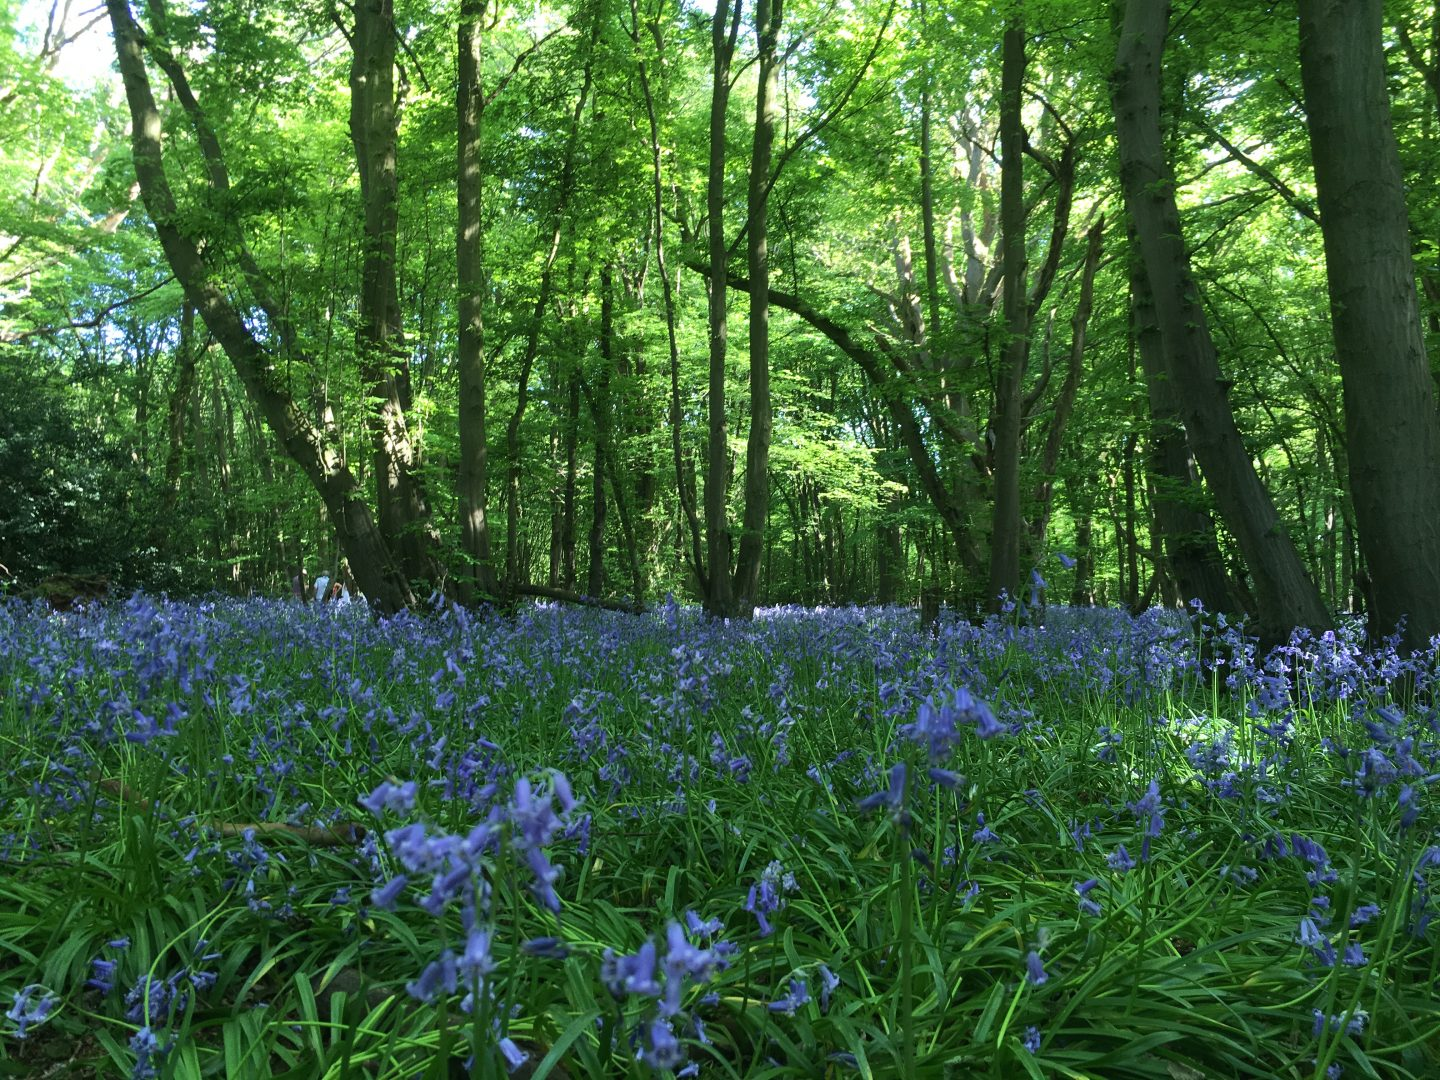 Bluebells at Heartwood